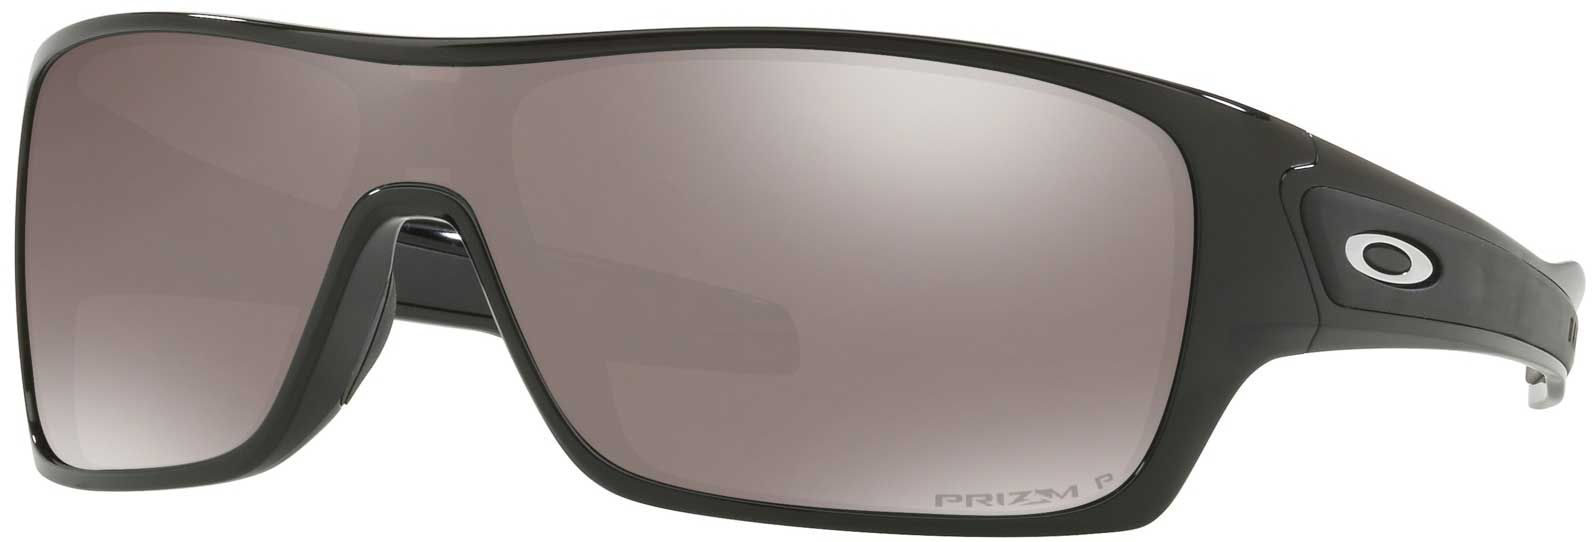 aa2a60854f622 Oakley Men s Turbine Rotor Polarized Sunglasses